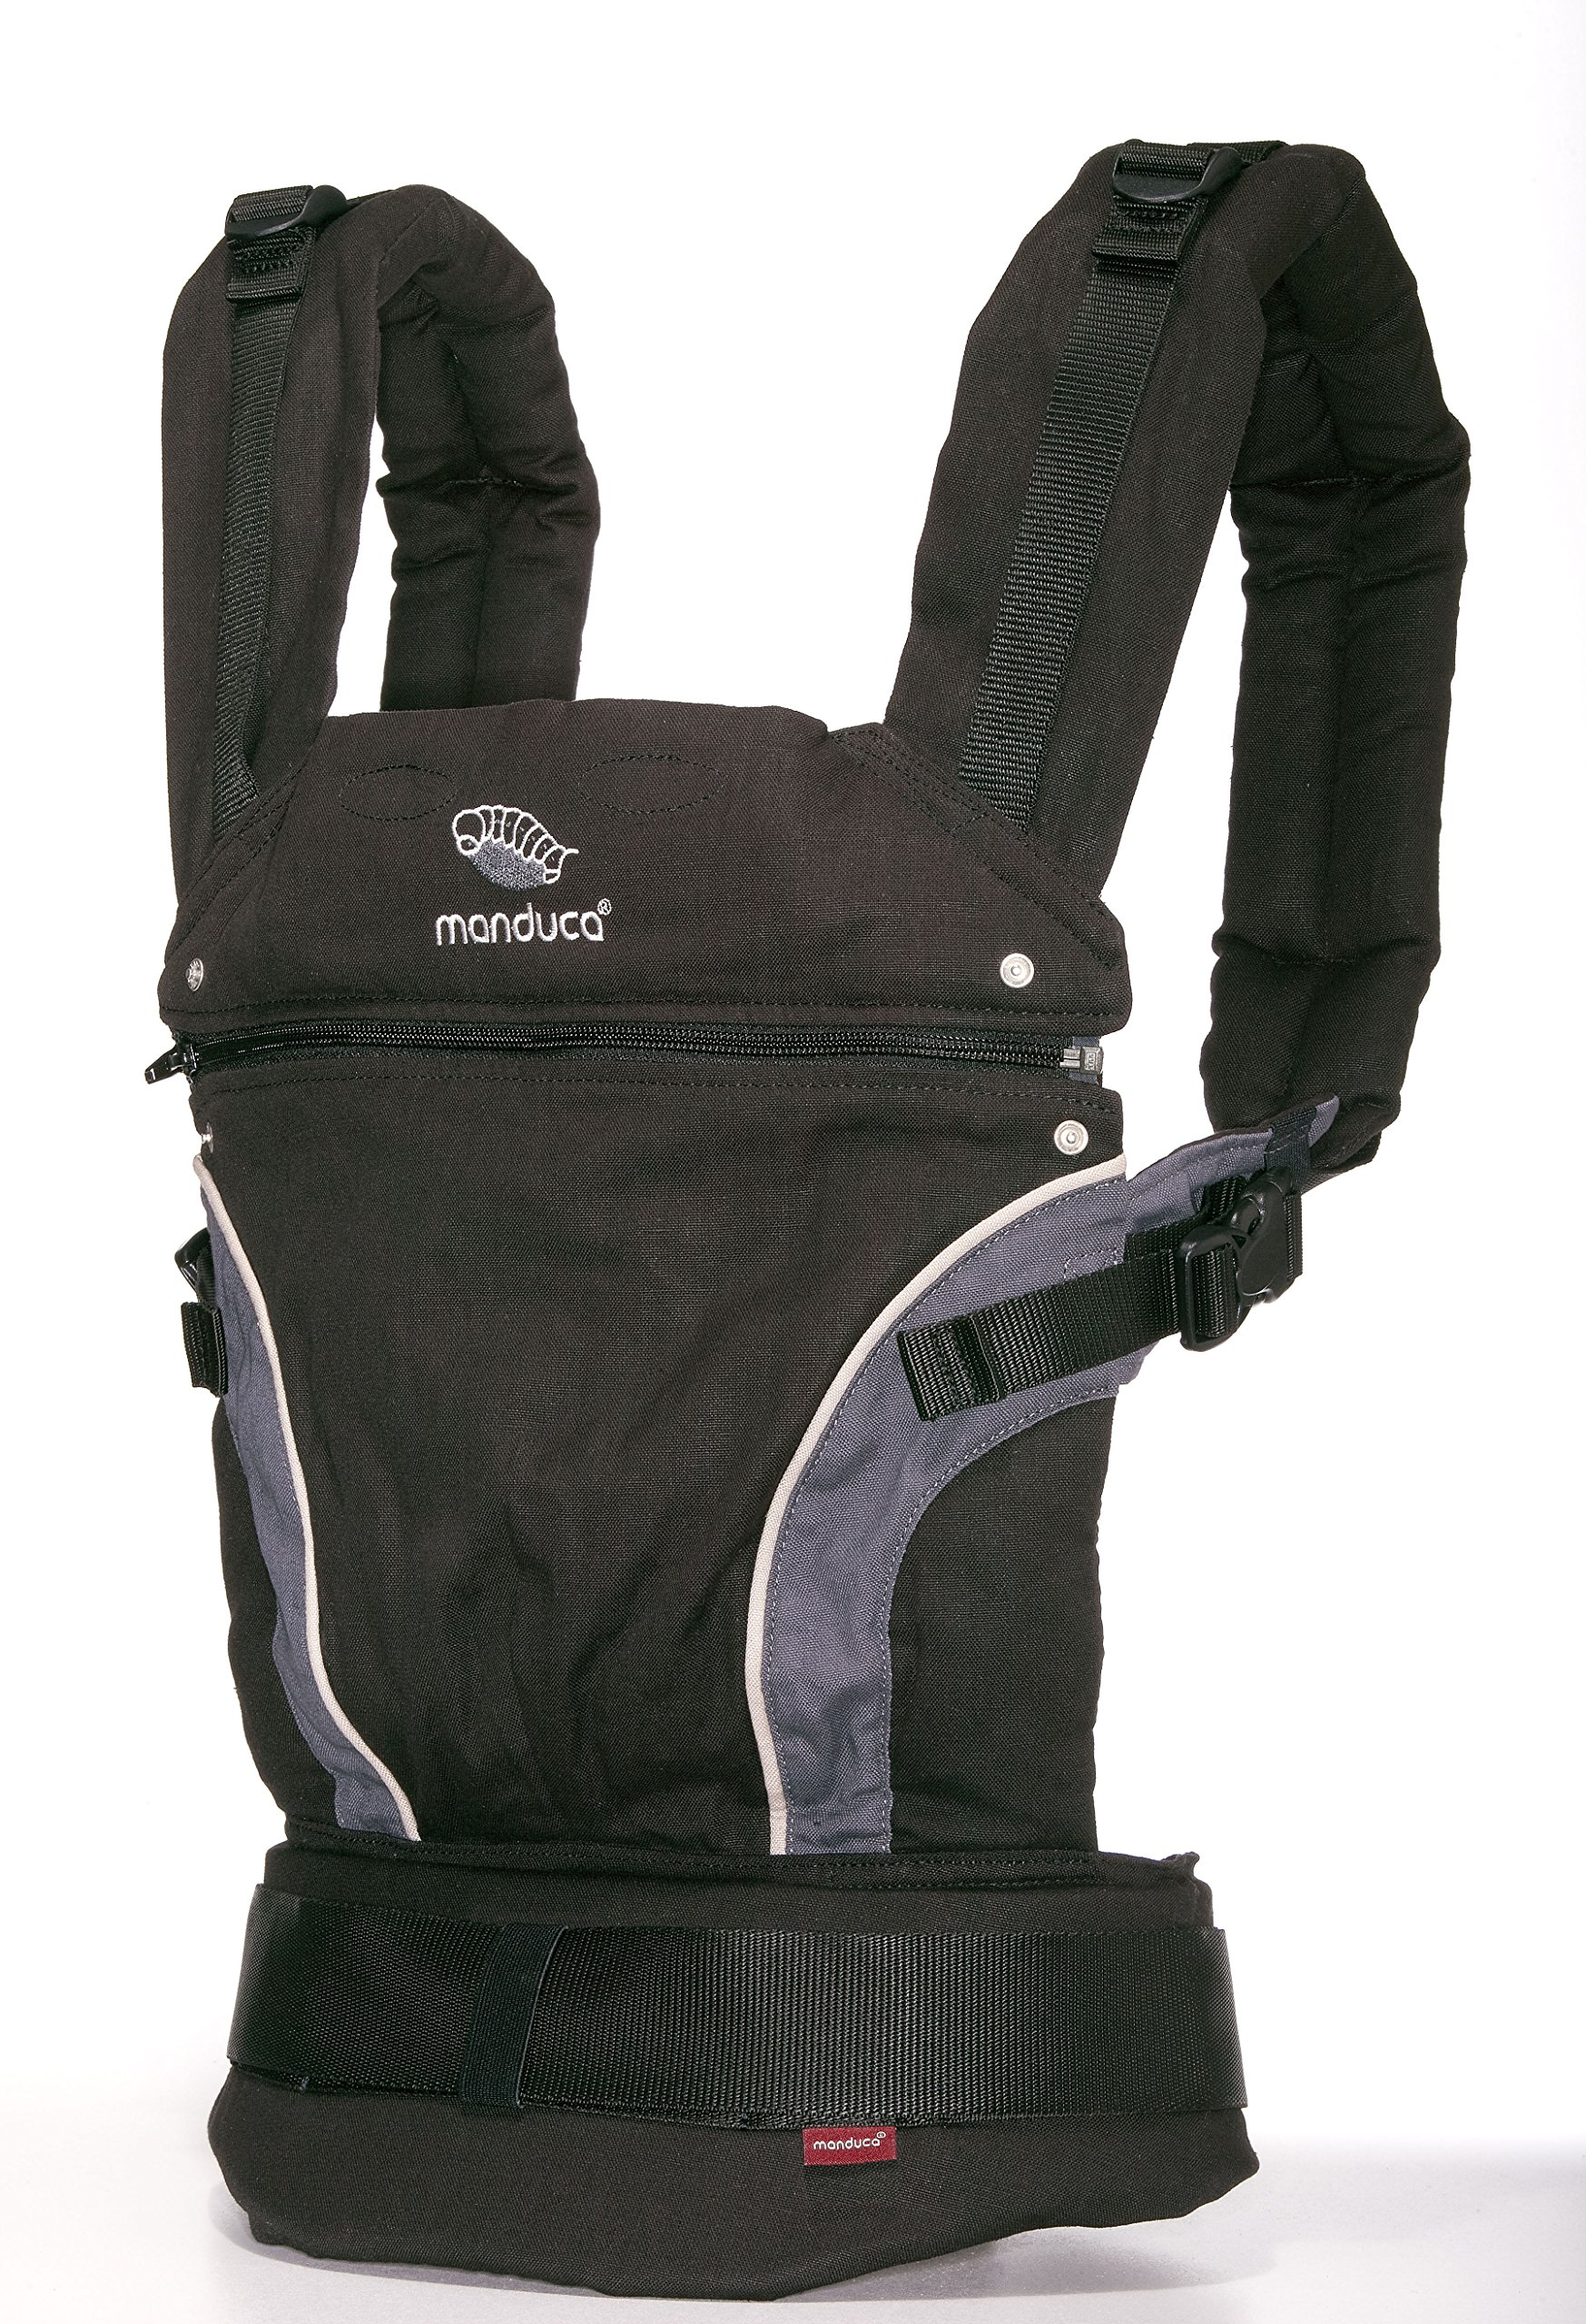 Manduca Standard Edition Carrier (Black)  Manduca